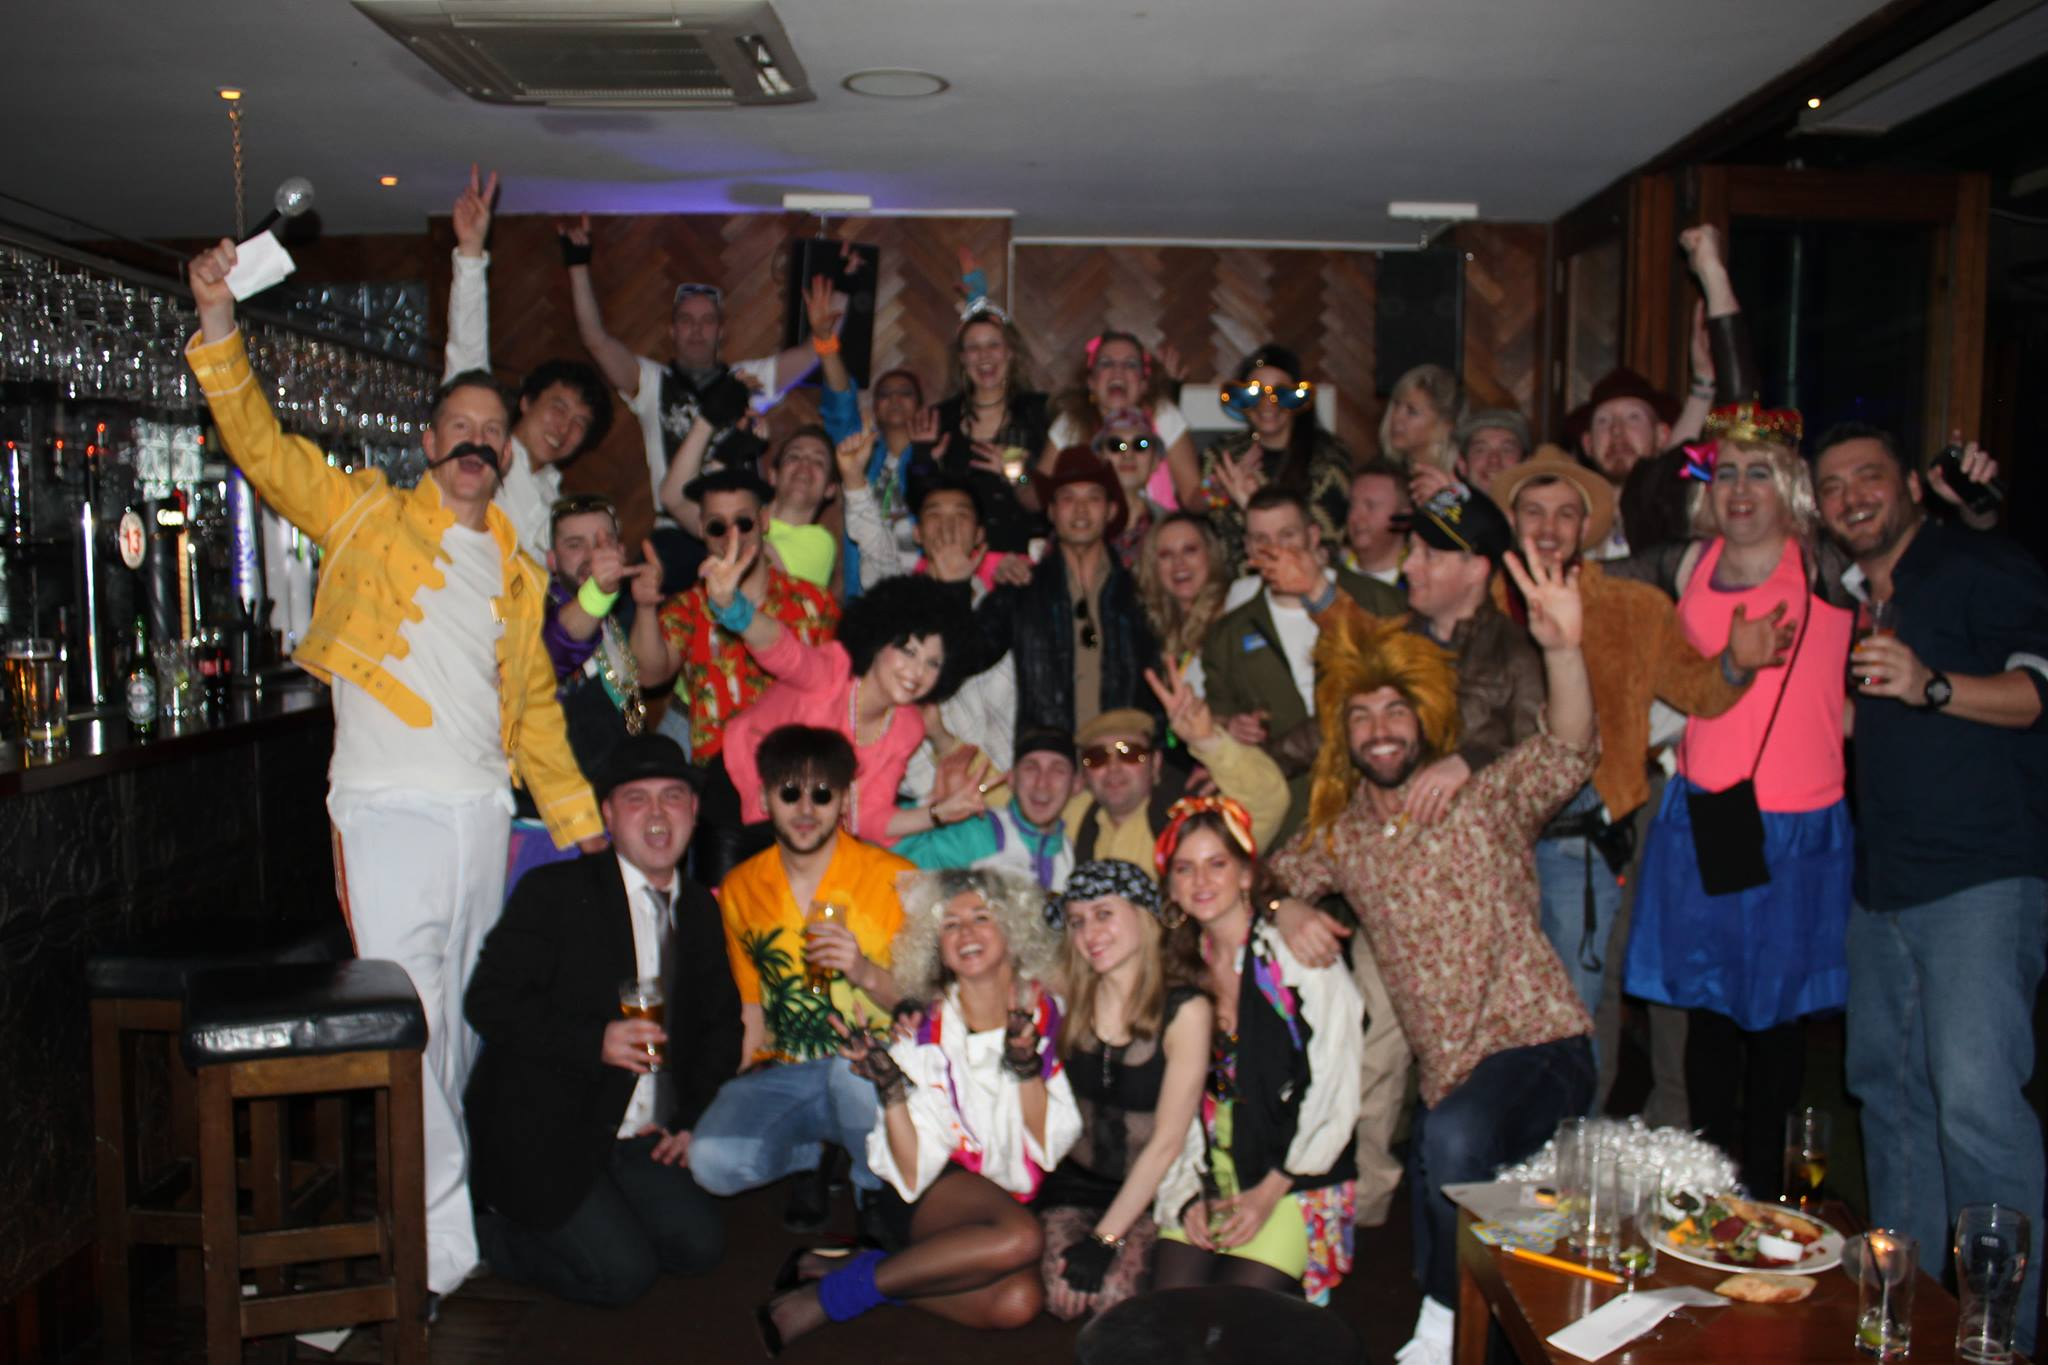 STAFF PARTY 2016- 8OS THEME! HELLO FROM ALL THE STAFF AT THE BANK!